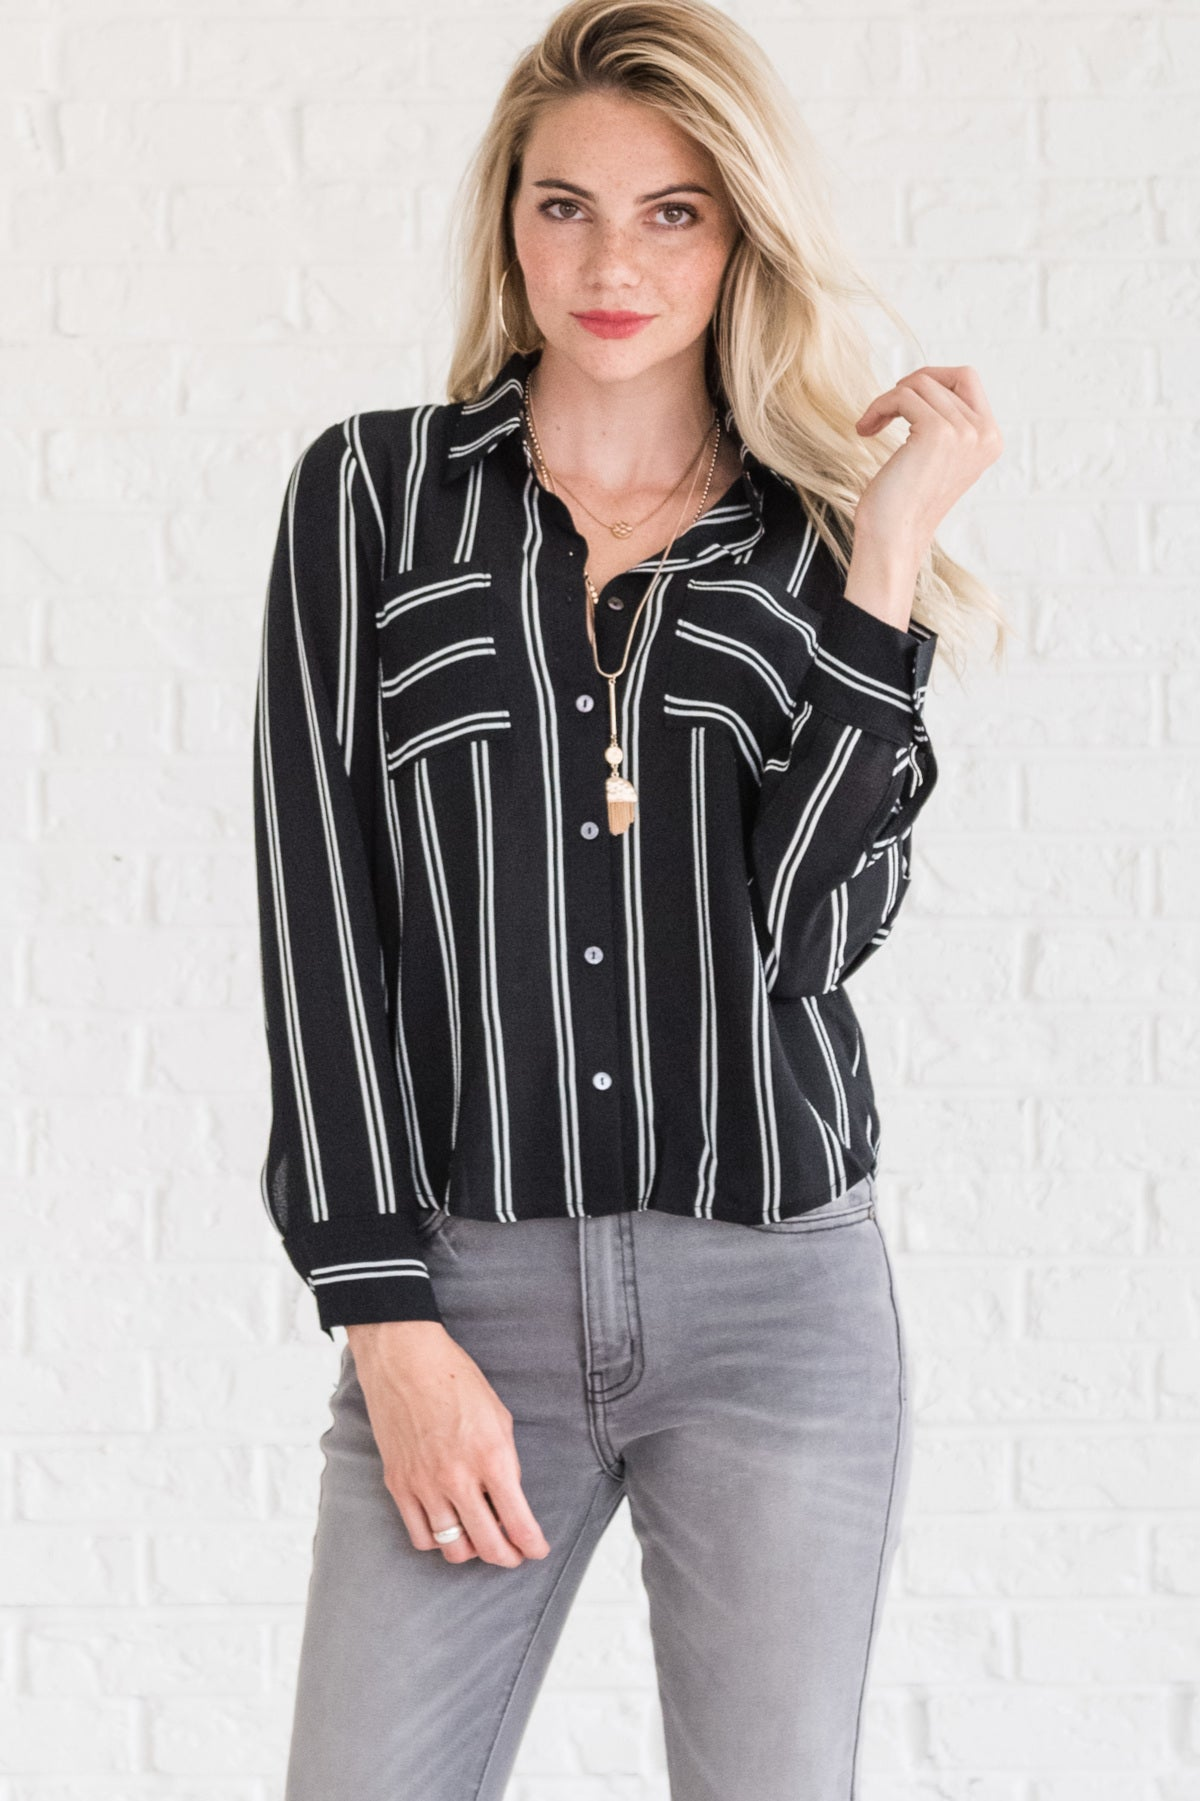 Black Striped Business Casual Clothing for Women